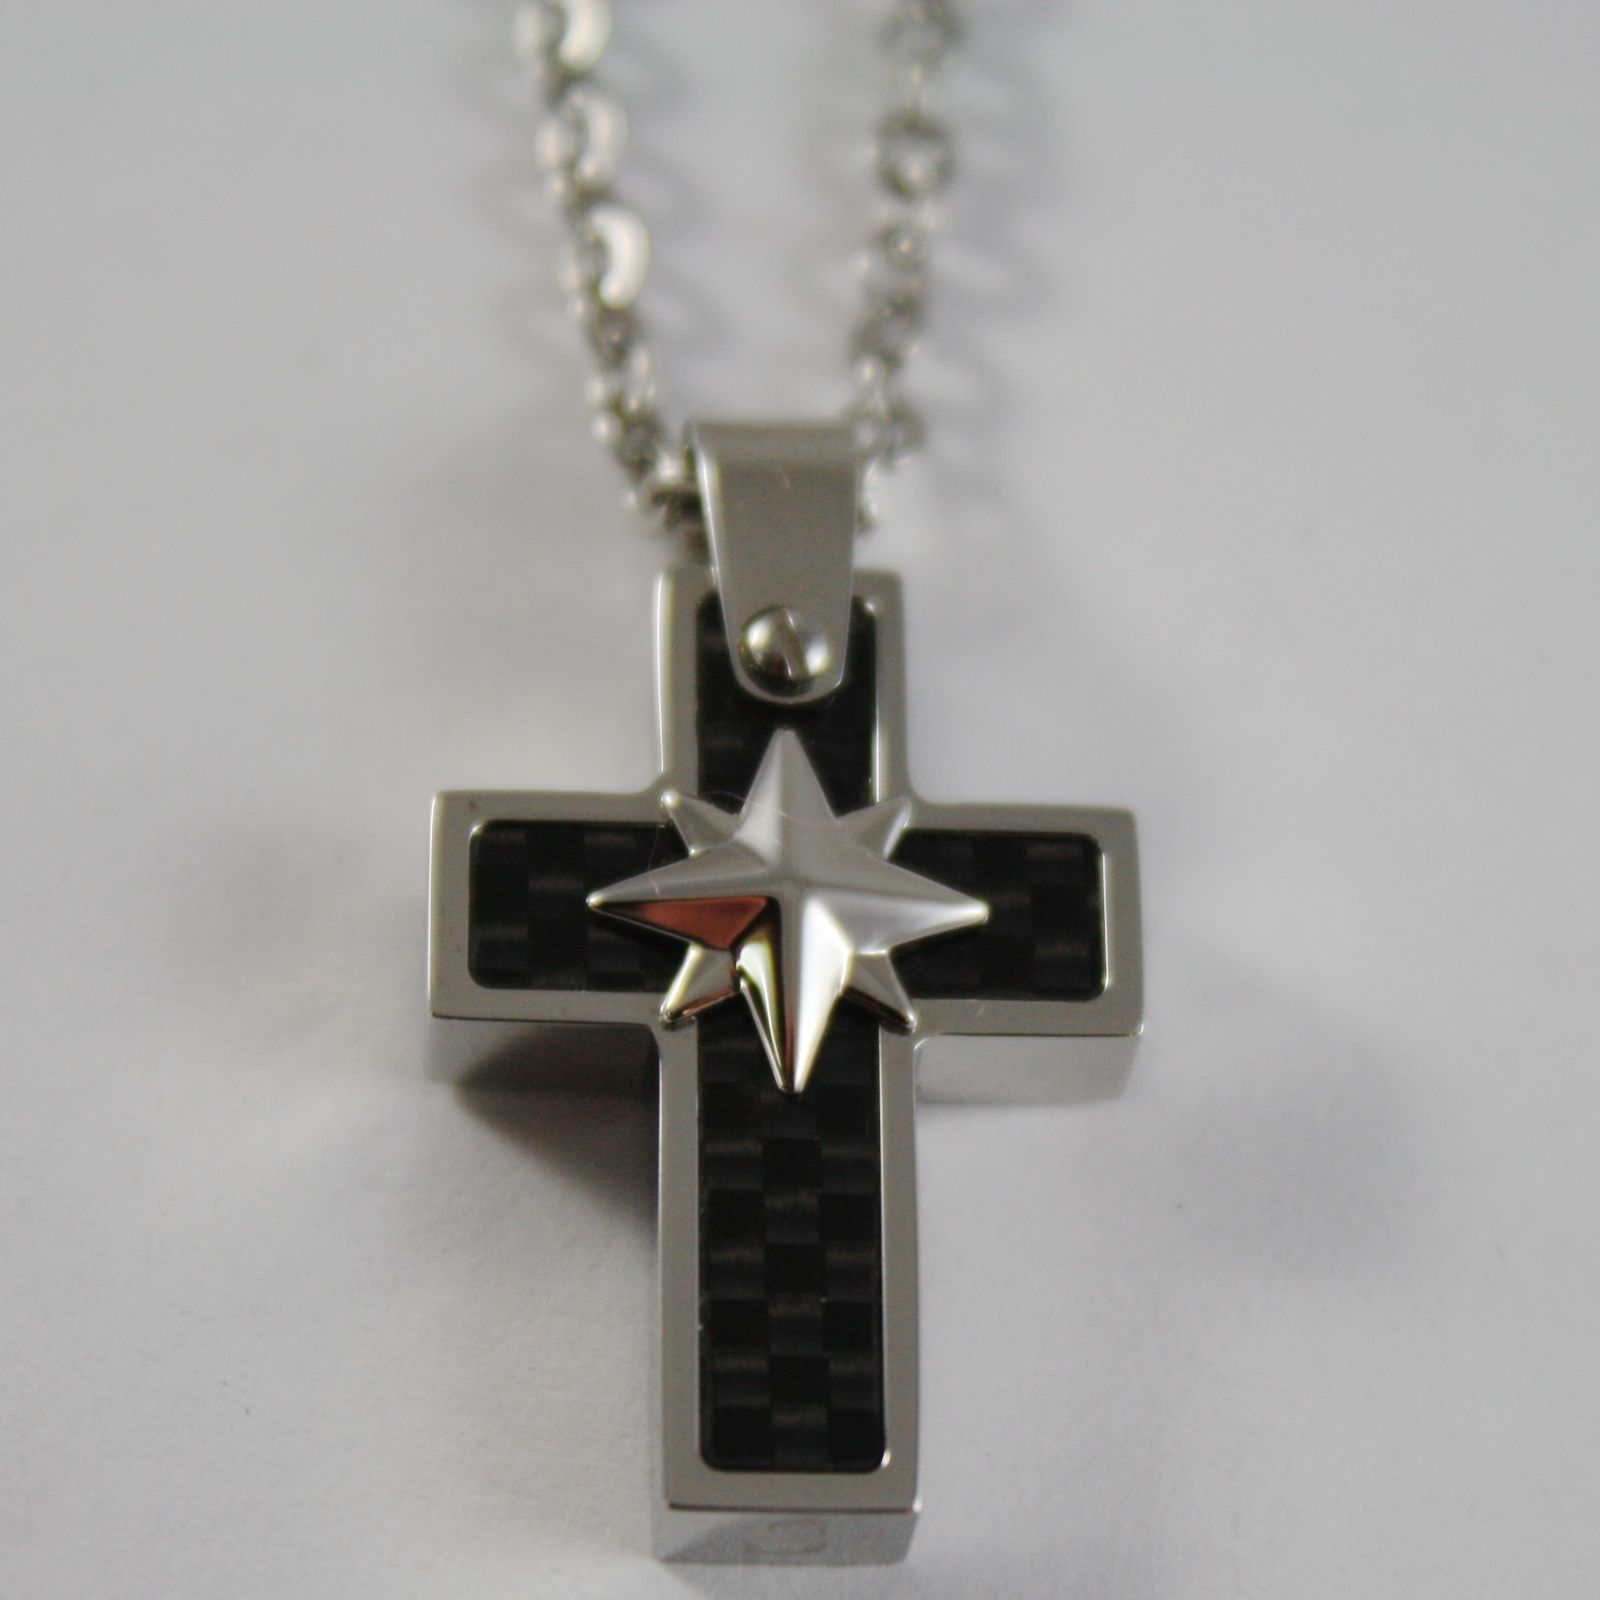 STAINLESS STEEL CARBON CROSS PENDANT, STAR, ROLO CHAIN, NECKLACE BY ZANCAN